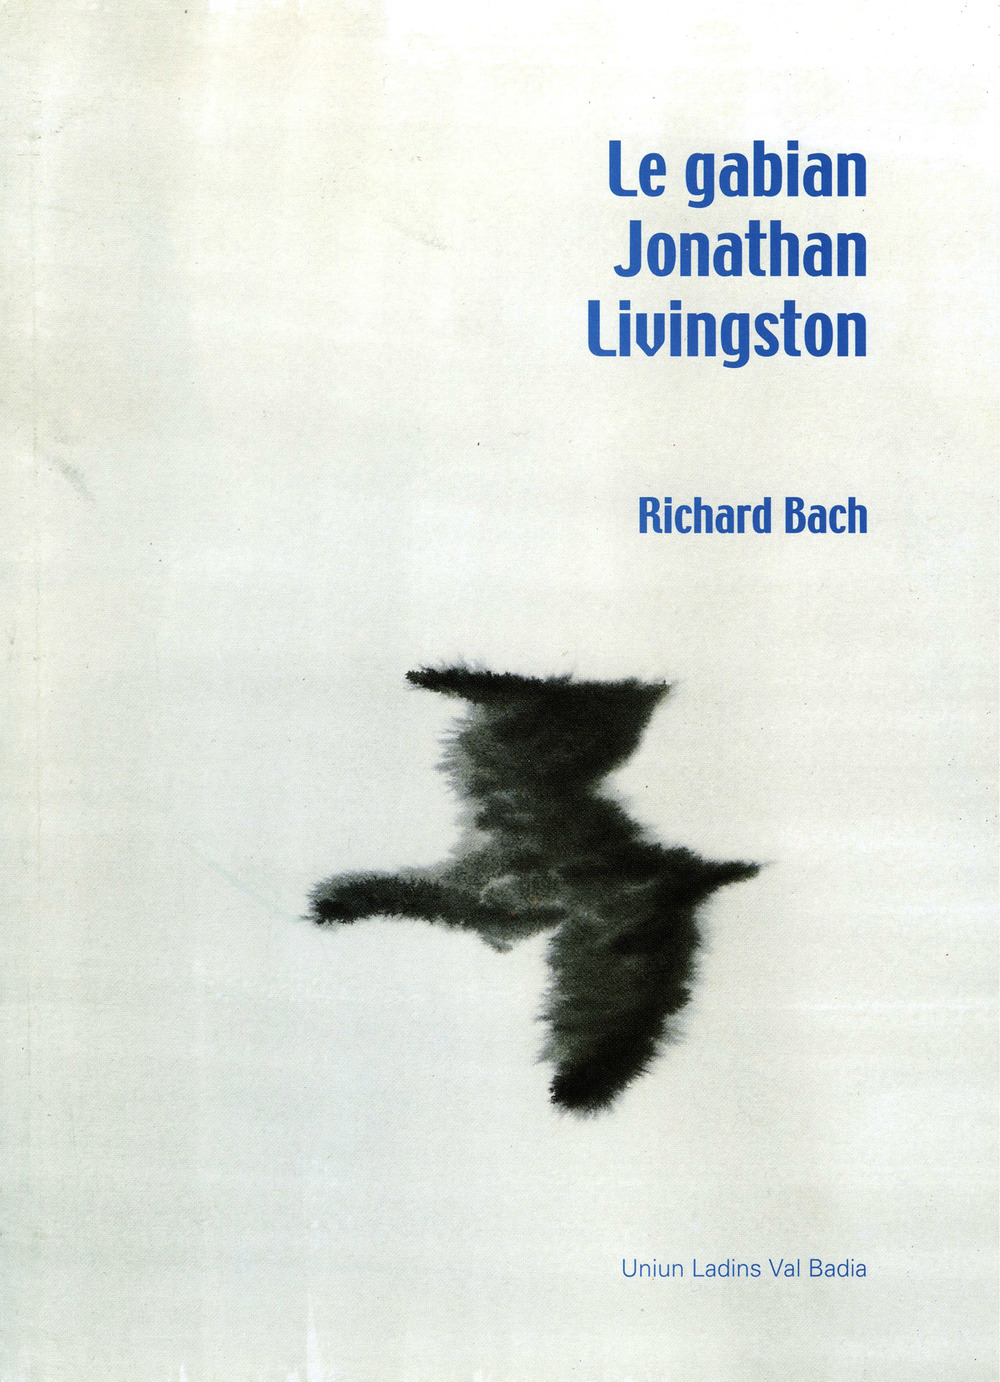 LE GABIAN JONATHAN LIVINGSTON